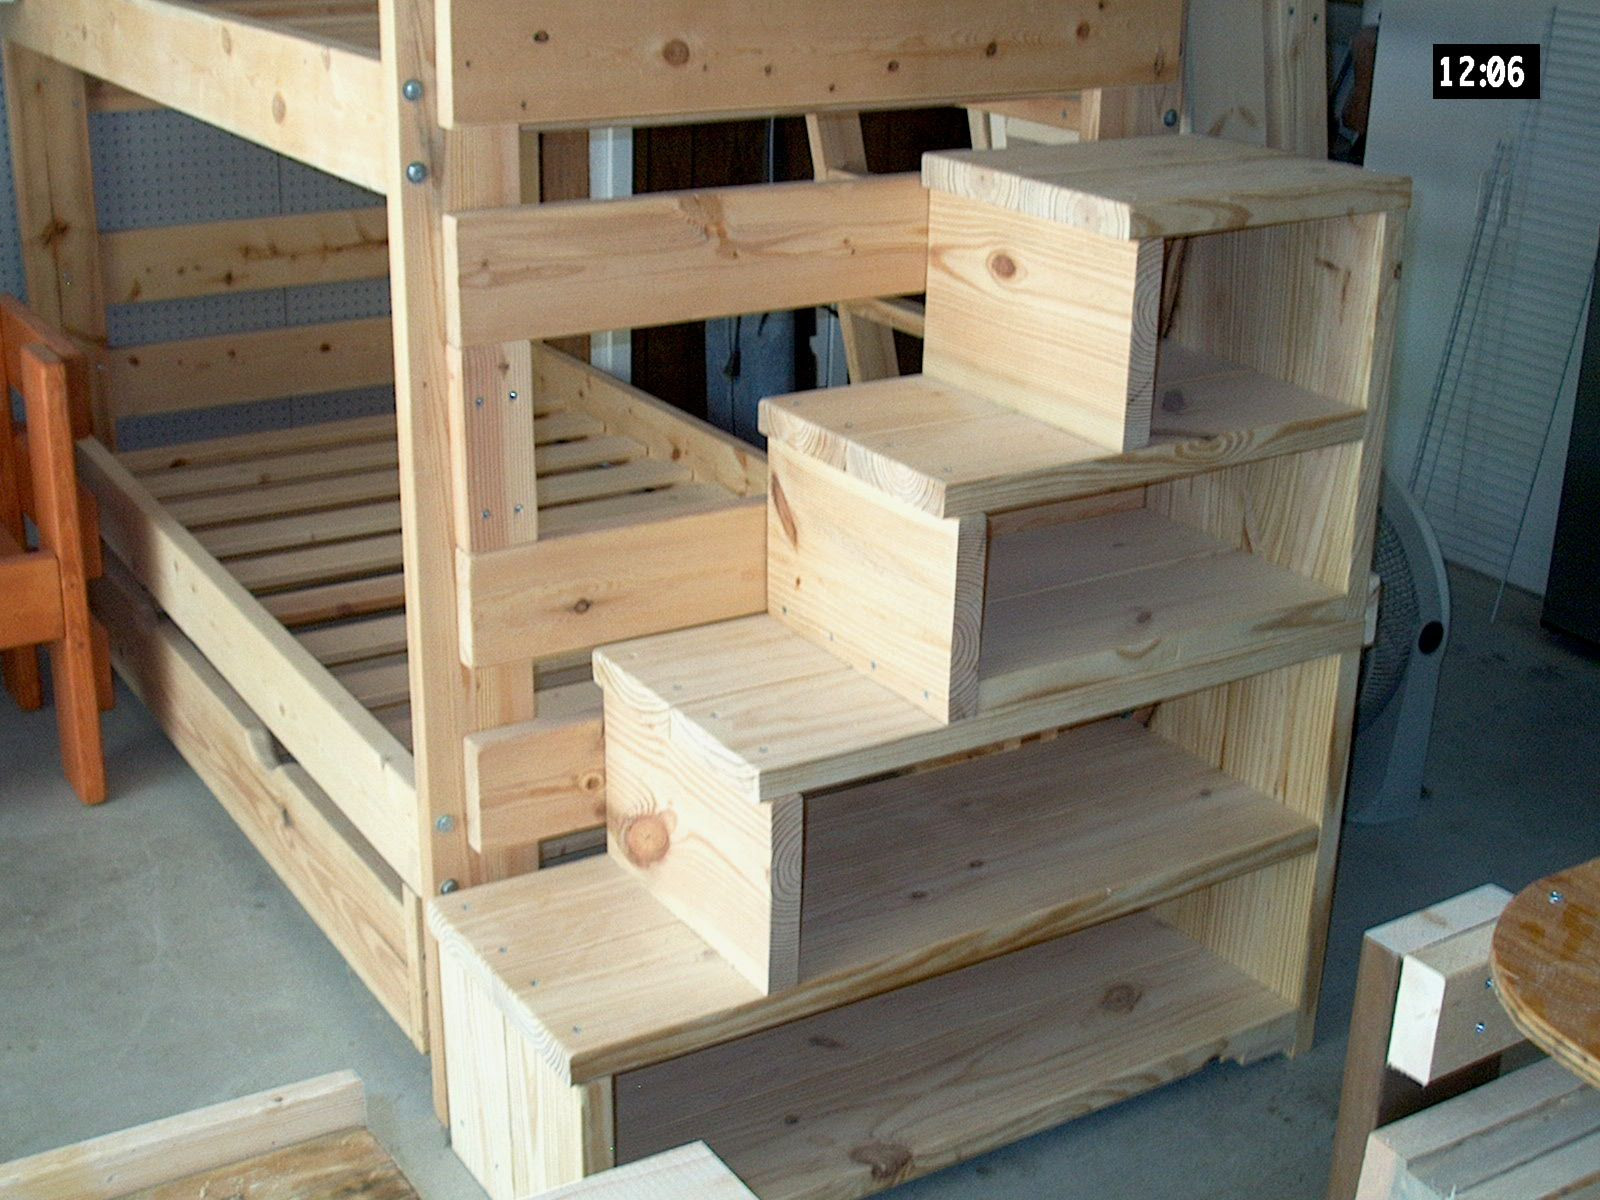 Best ideas about DIY Bunk Beds With Stairs . Save or Pin Best 25 Bunk bed ladder ideas on Pinterest Now.